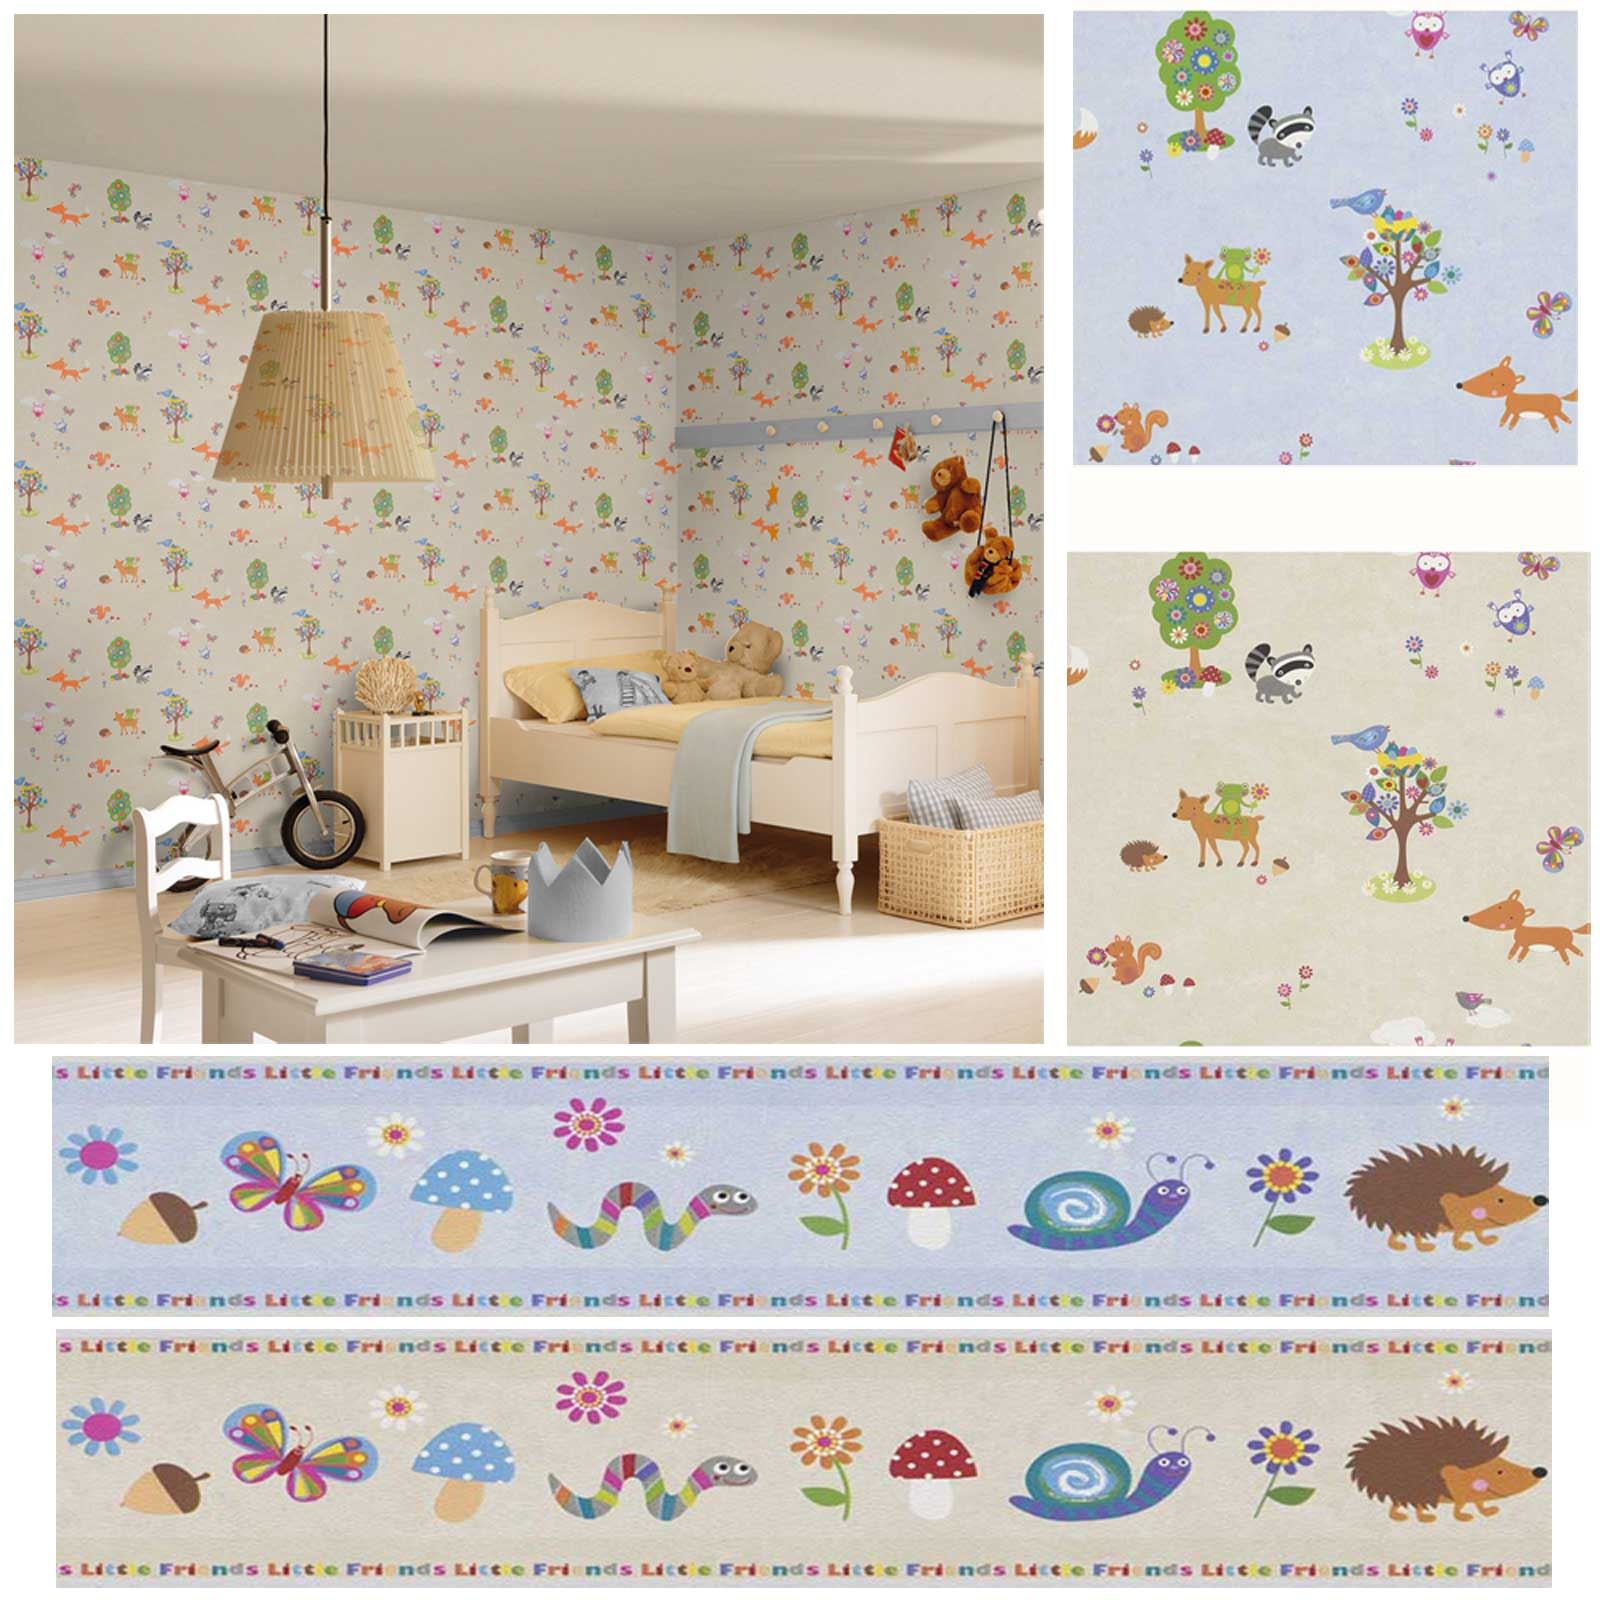 woodland animals wallpaper borders bedroom nursery sand neutral blue ebay. Black Bedroom Furniture Sets. Home Design Ideas